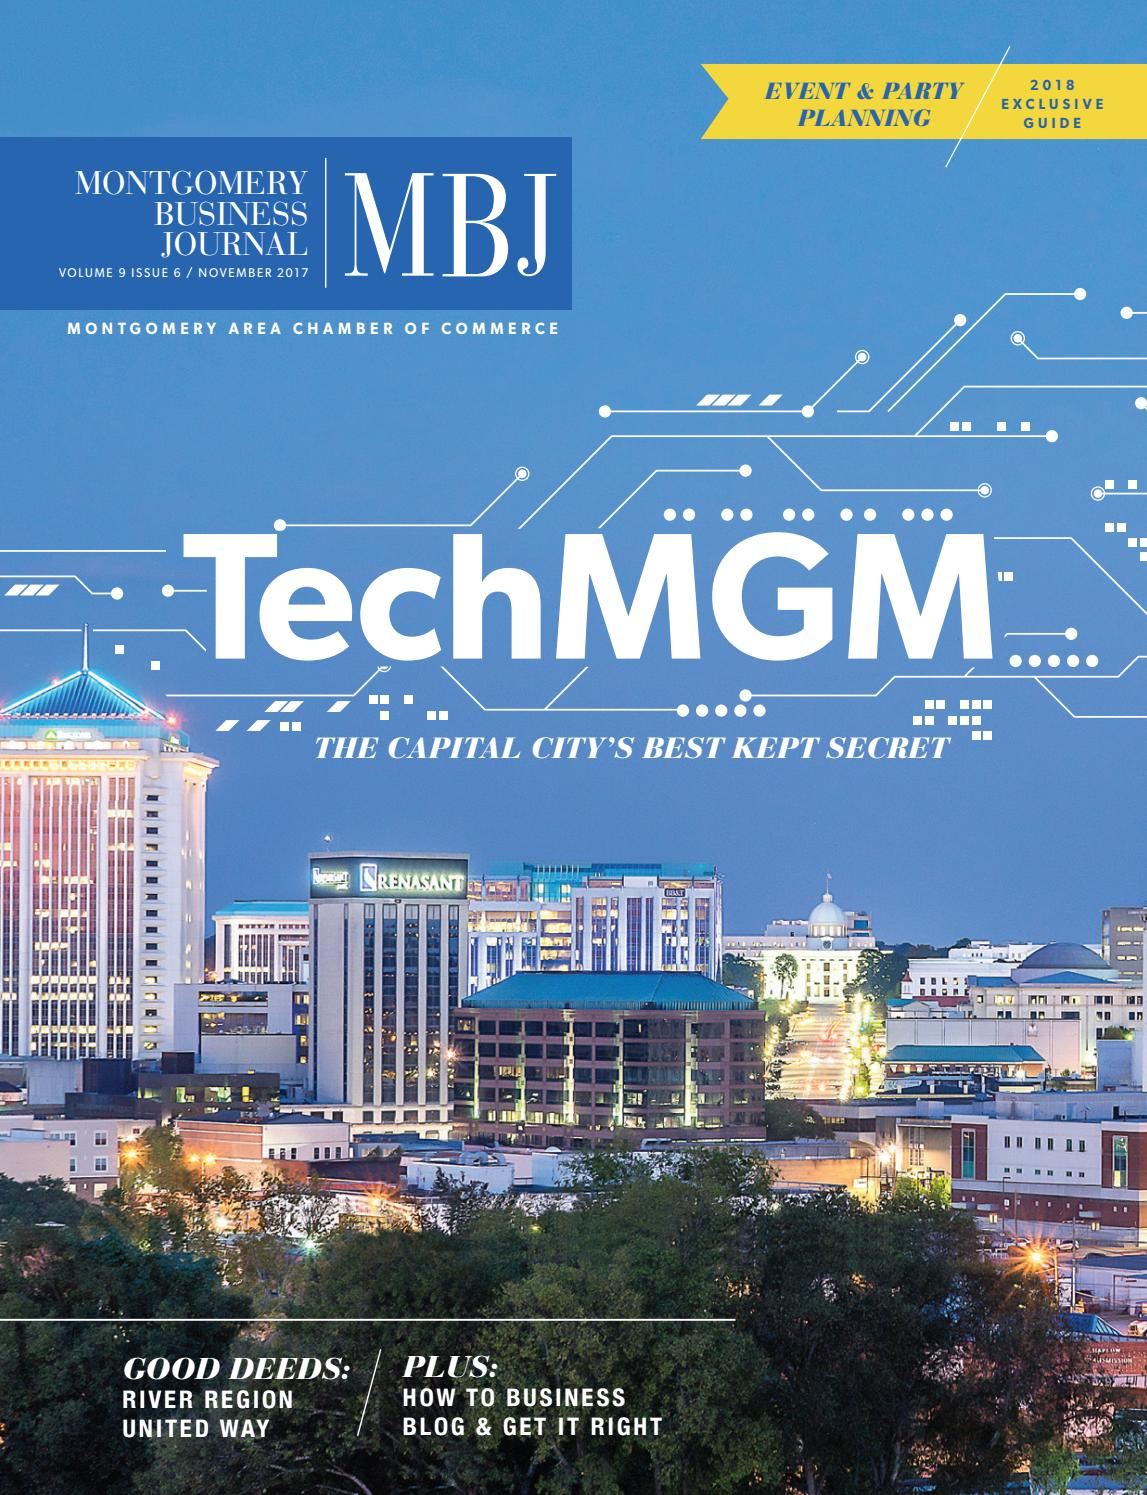 Montgomery Business Journal - November 2017 by Jina Clark - issuu